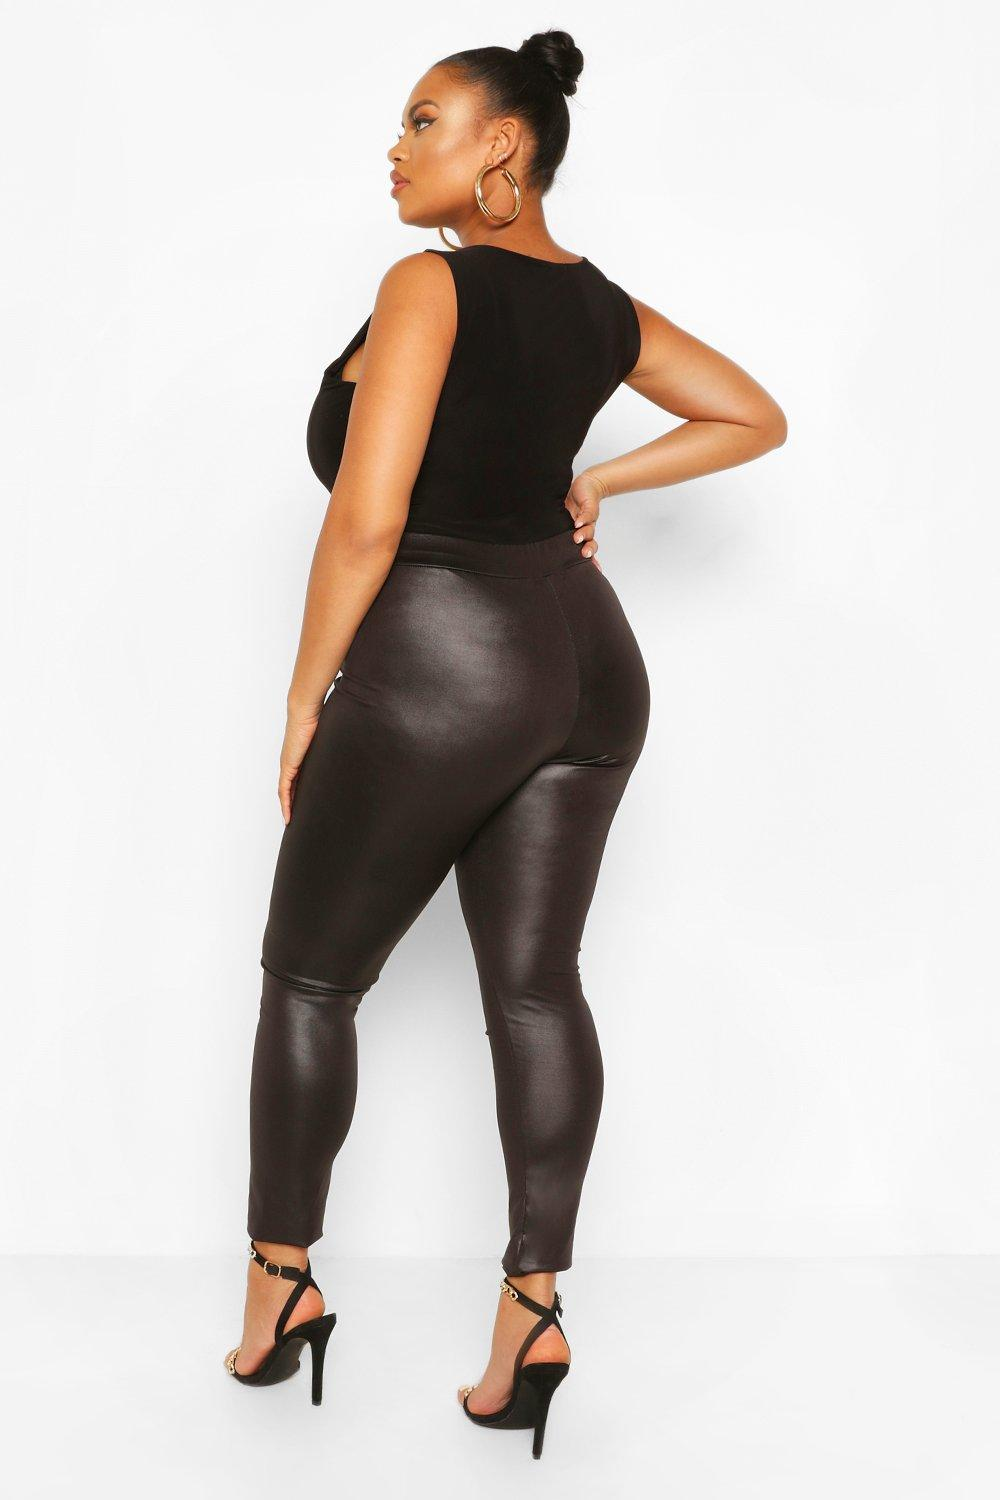 Tons of free Wet Look Leggings porn videos and XXX movies are waiting for you on Redtube. Find the best Wet Look Leggings videos right here and discover .